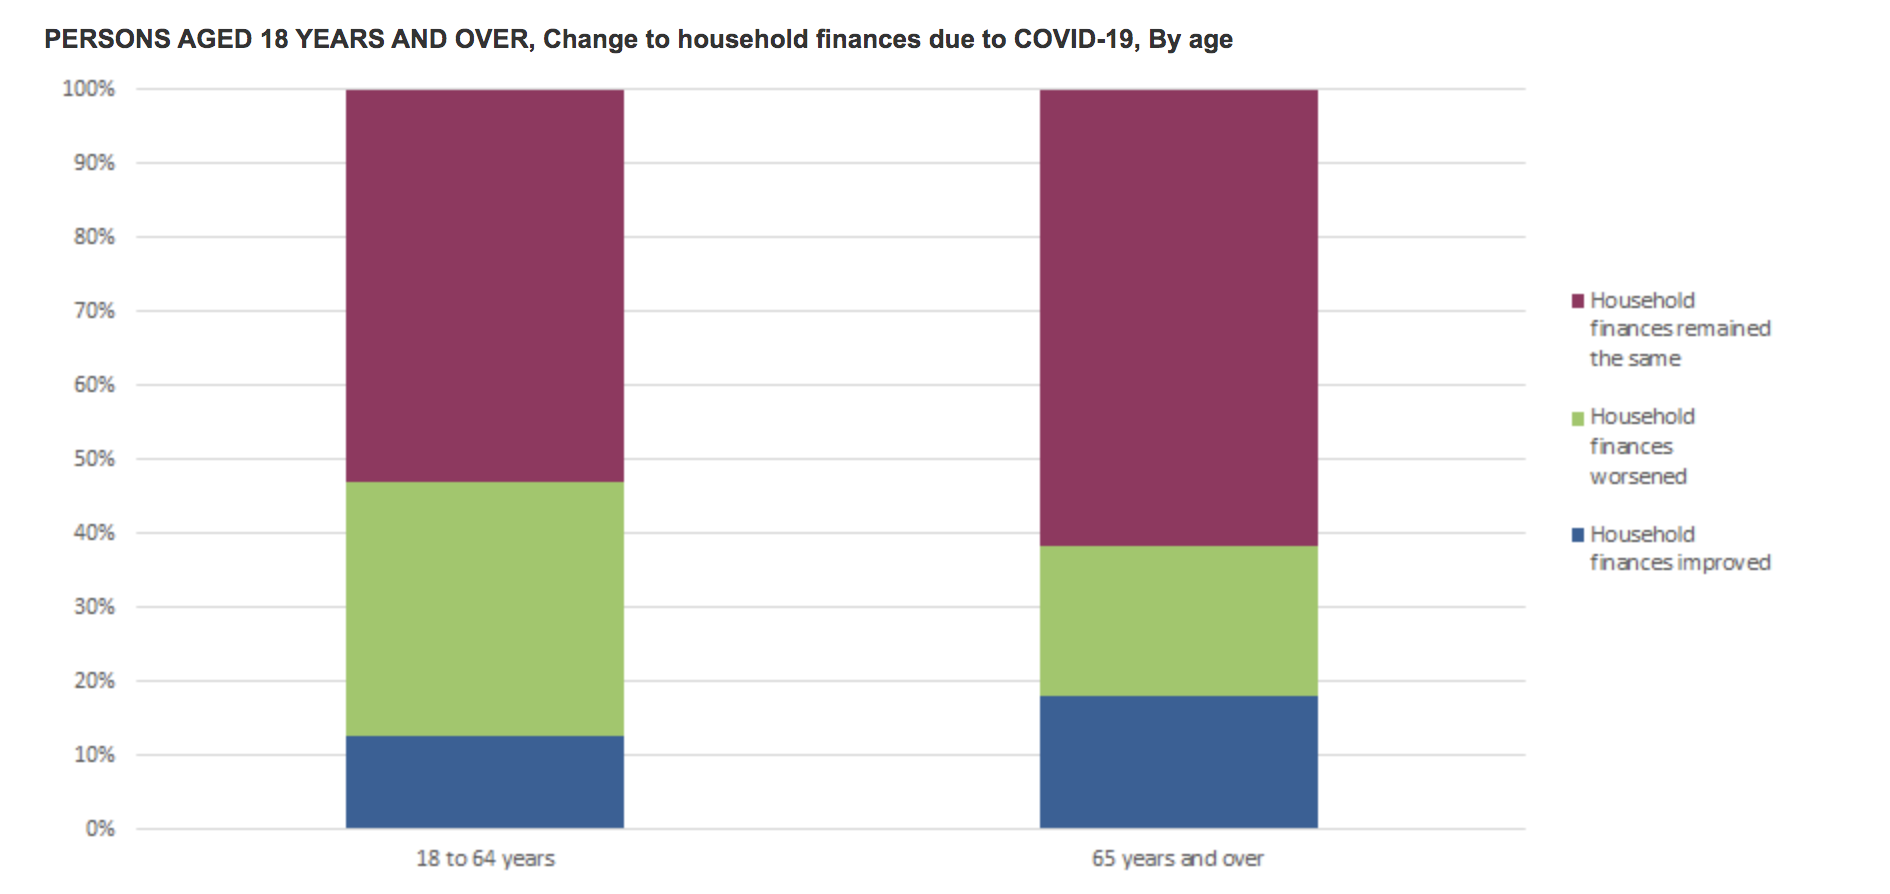 Nearly half of Australians aged 18 years and above have had their household finances impacted by Covid-19 in the period mid-March to mid-April, at 45 per cent. The results come from the latest Australian Bureau of Statistics survey, which measures Covid-19 impacts on financial stress, stimulus payments received, psychological distress, and contact with family and friends.